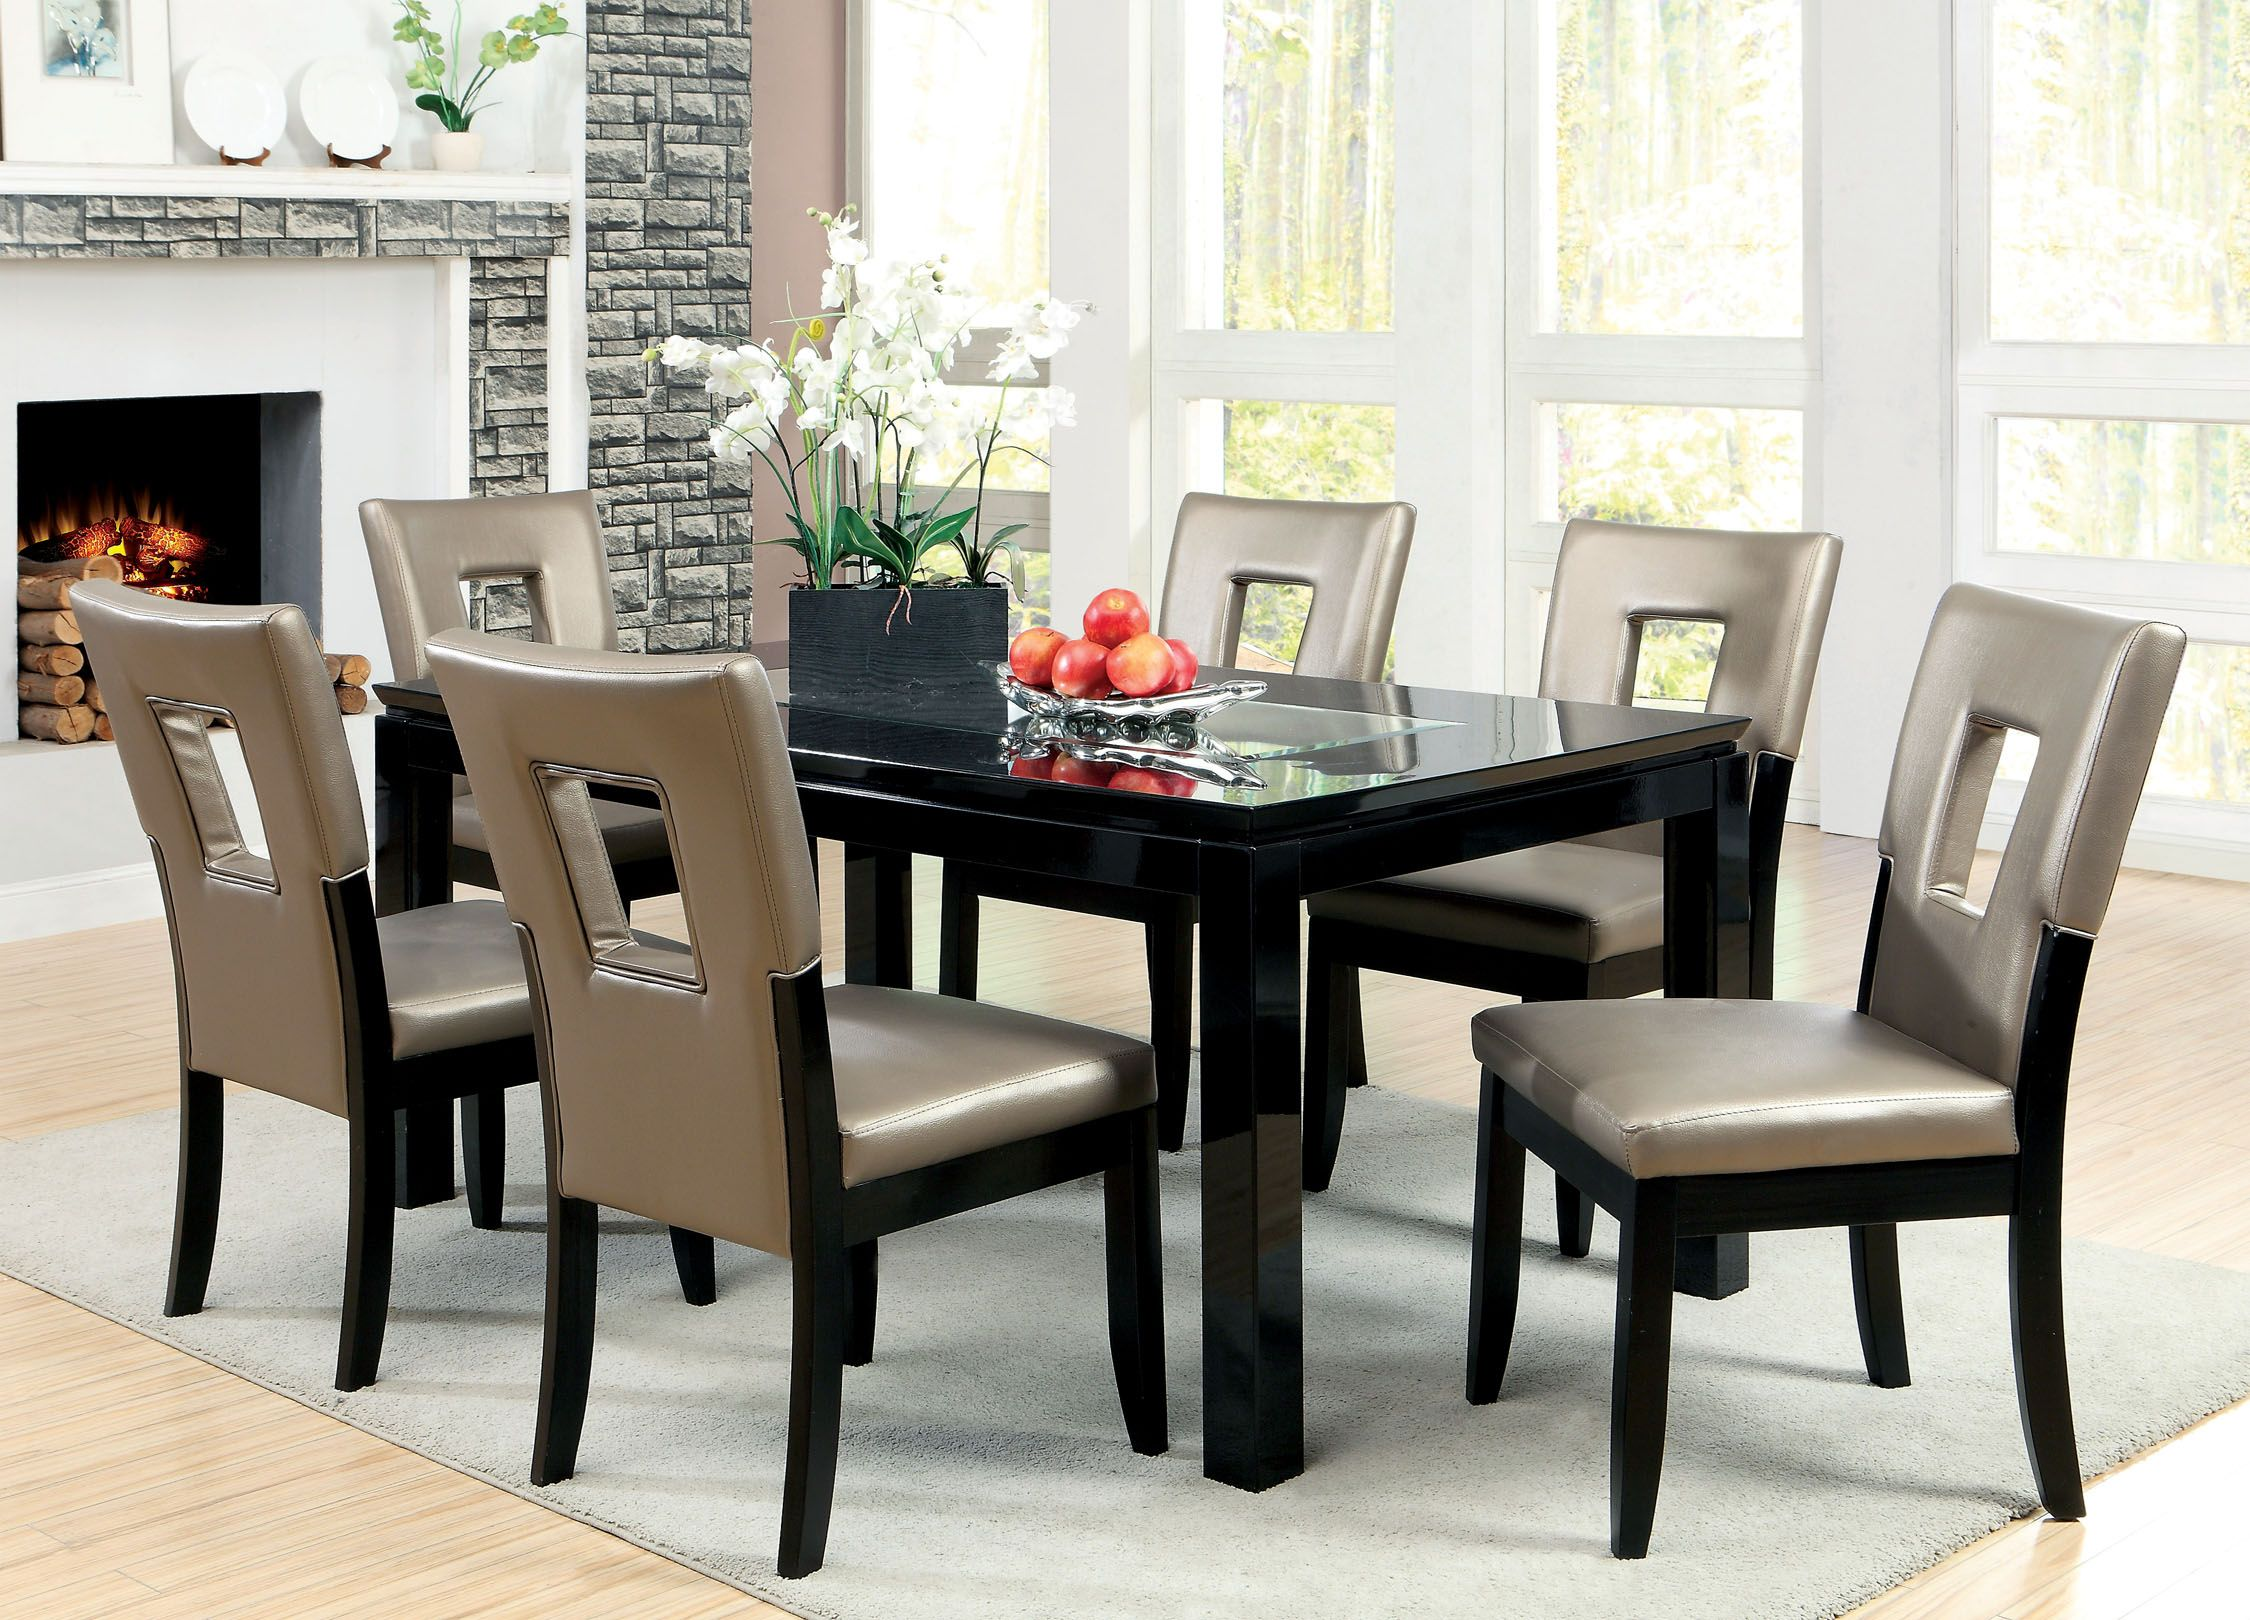 Beau Furniture Of America Marjesko 7 Piece Black Glass Top Dining Set